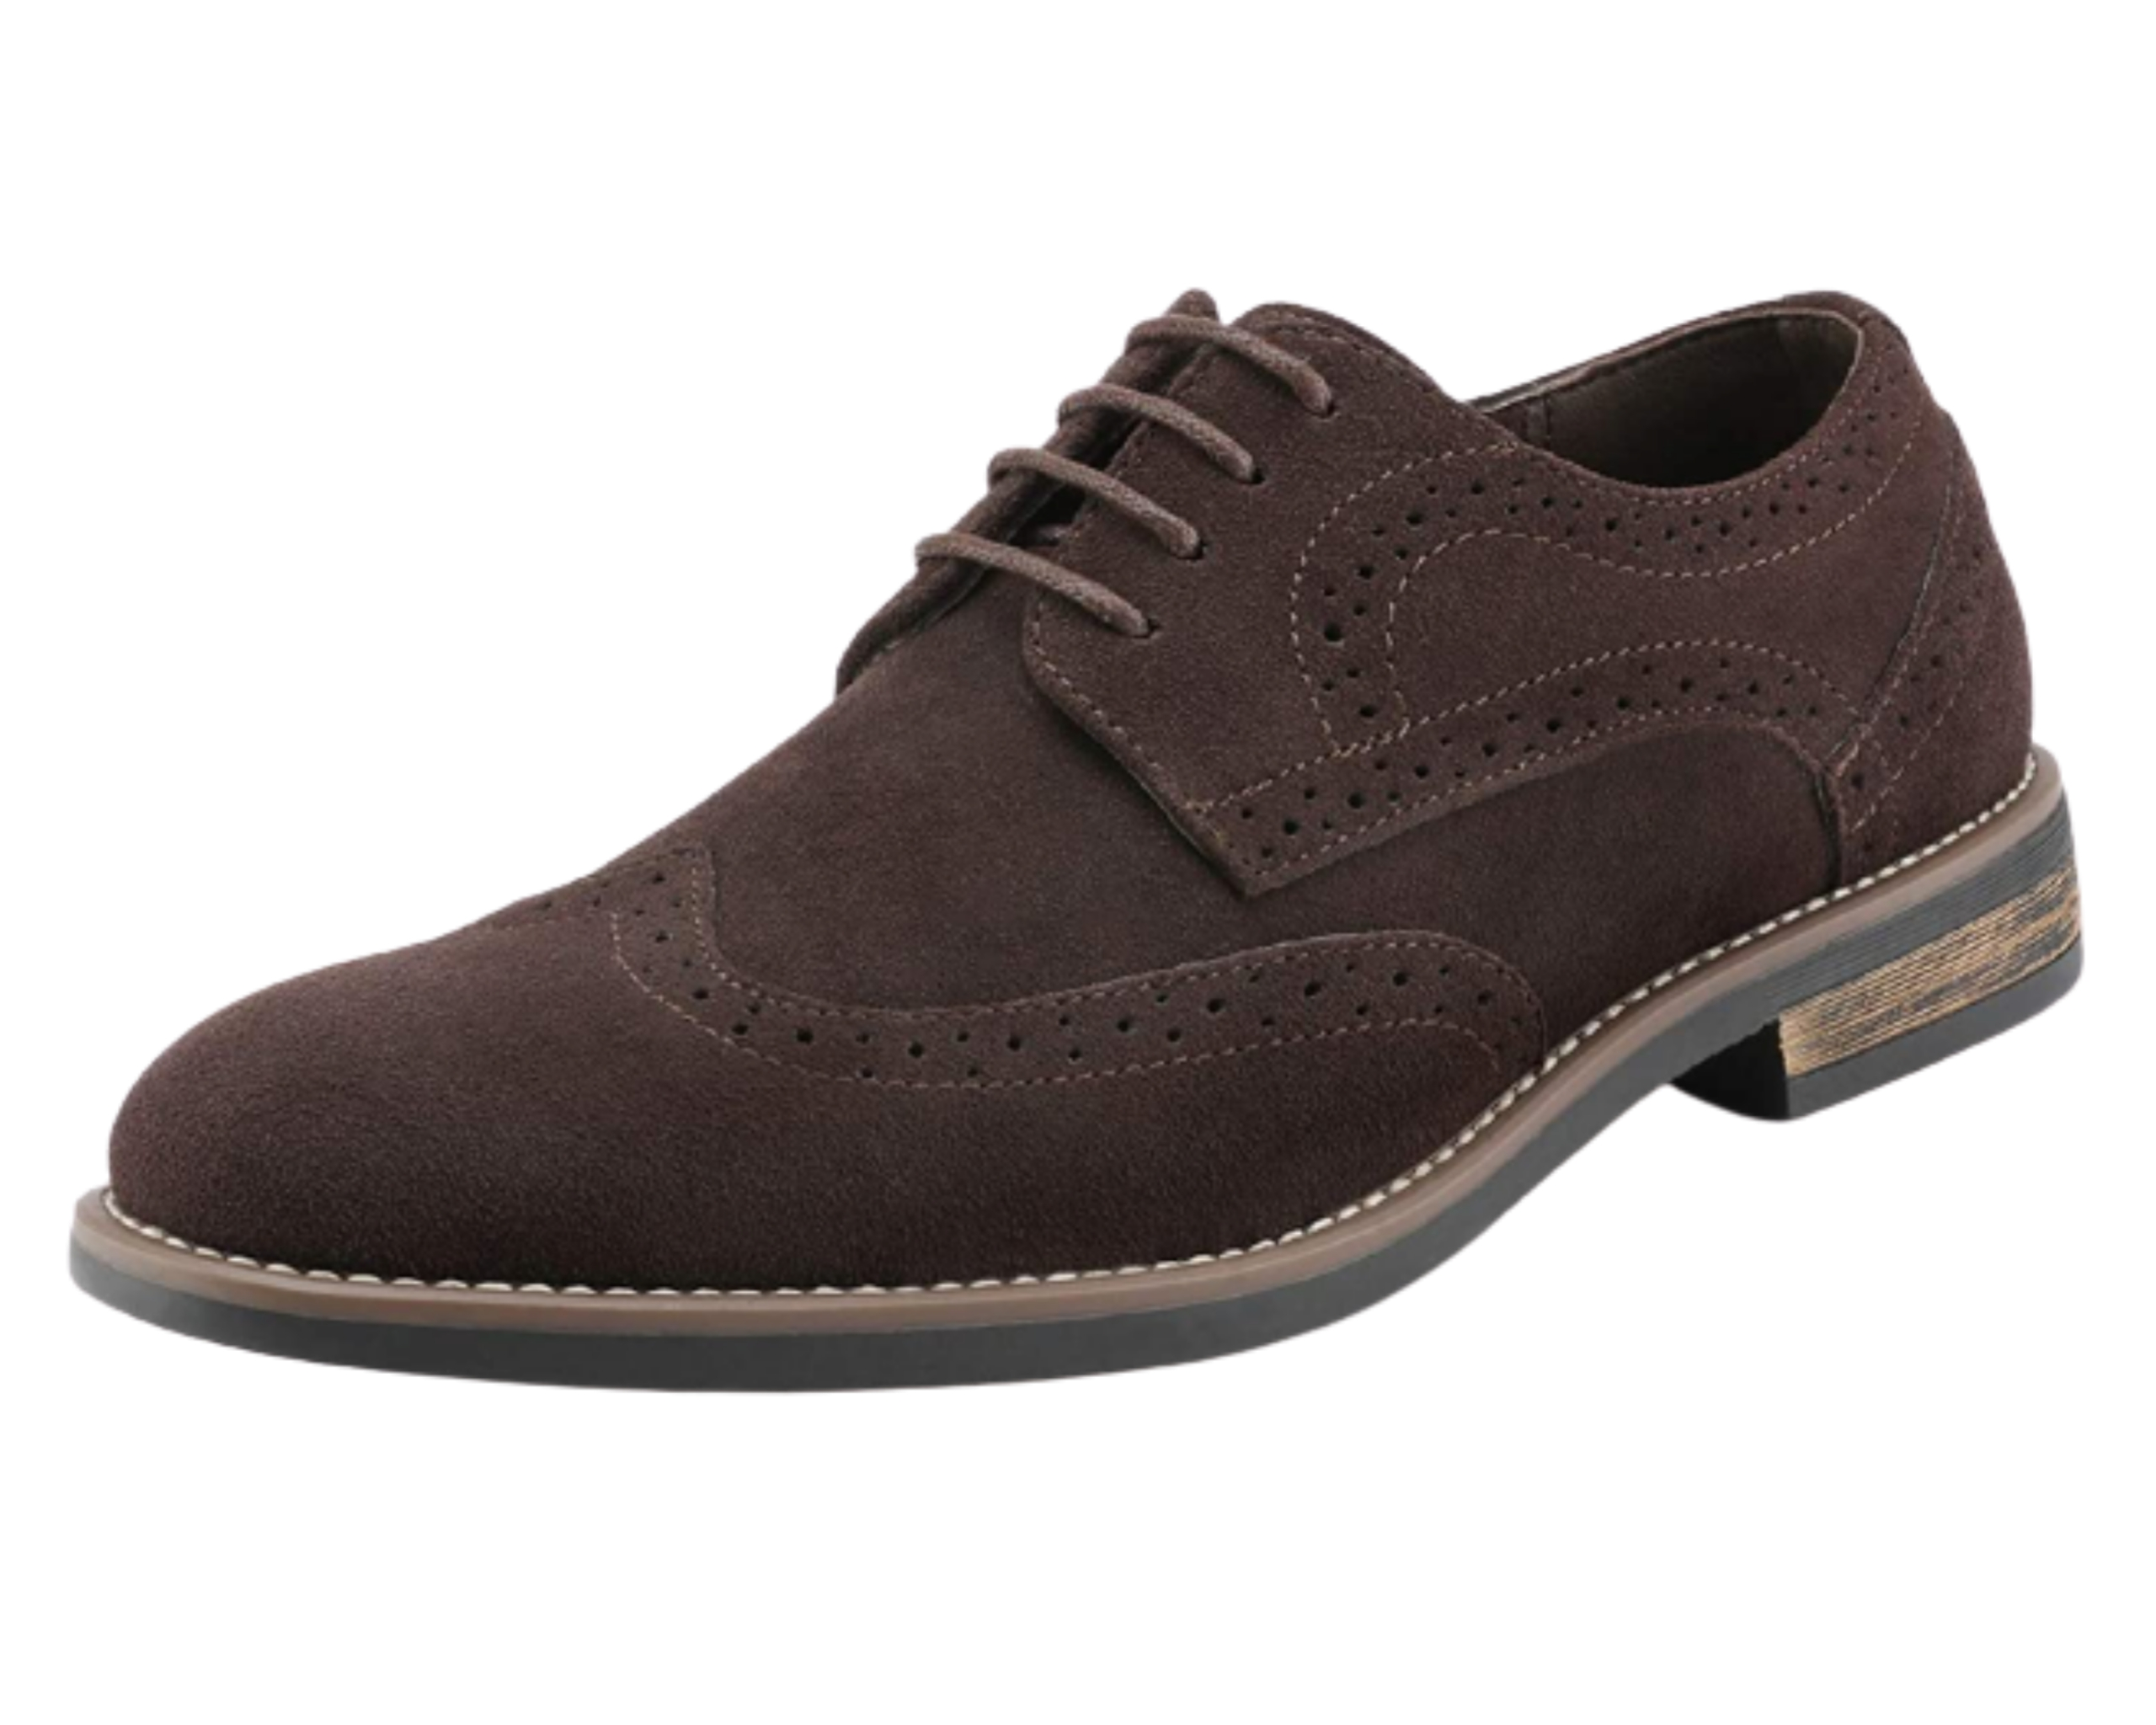 Brown dress shoes for men